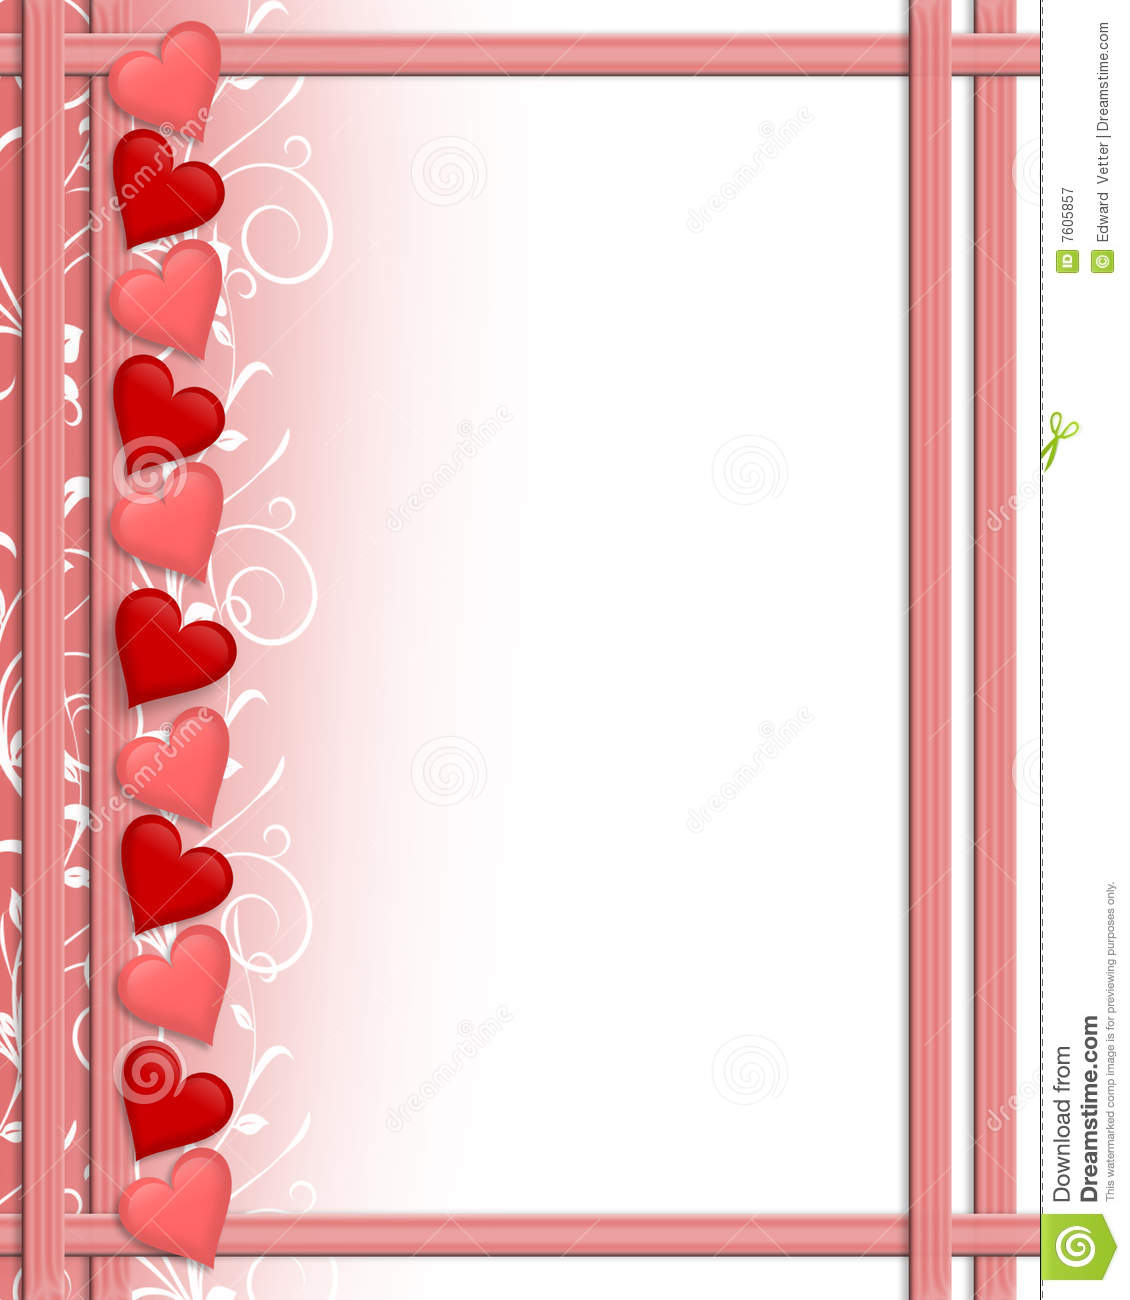 valentines day hearts border royalty free stock photography